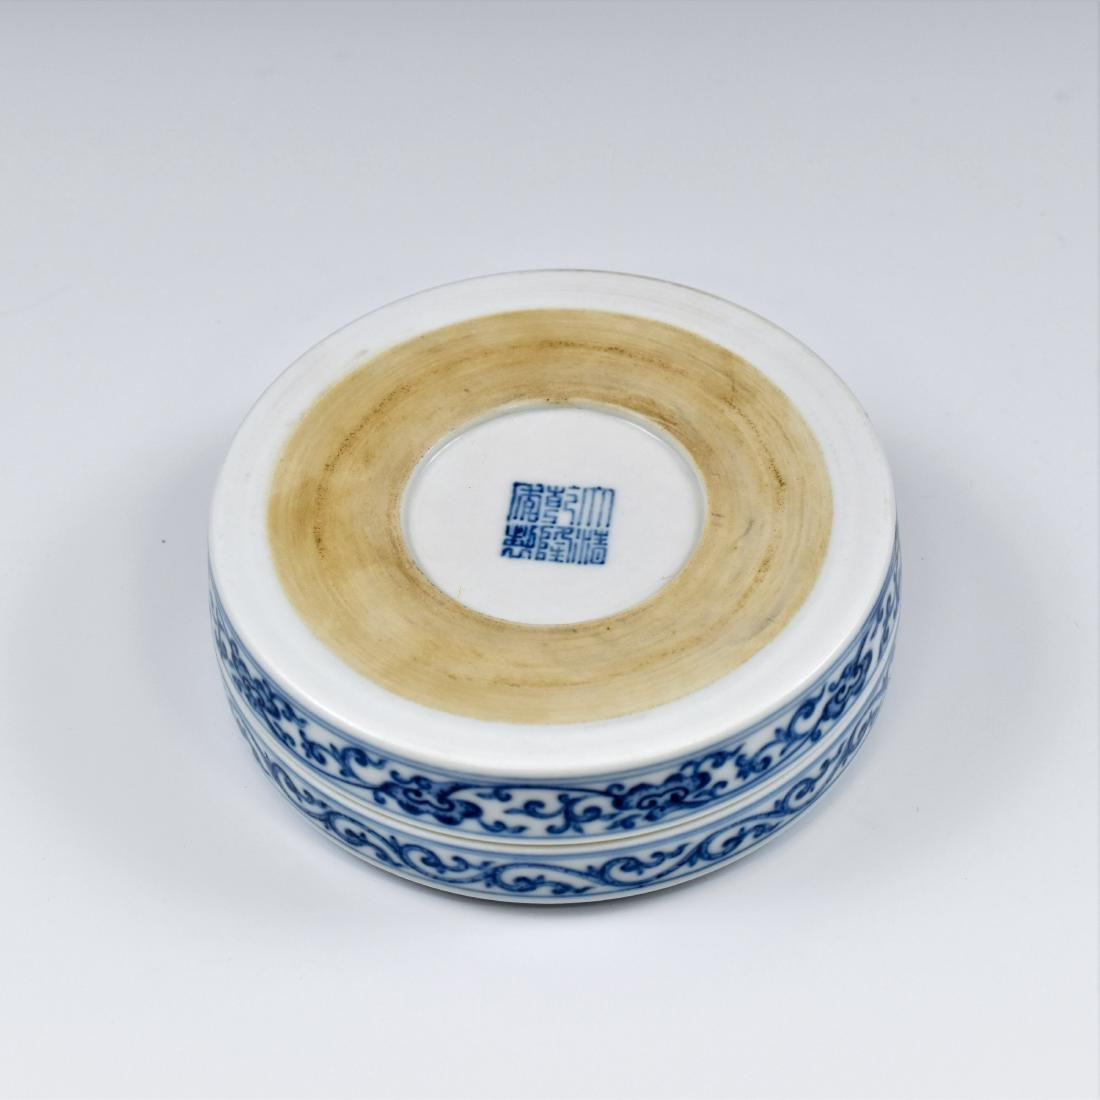 QING CHINESE PORCELAIN INK BOX - 8